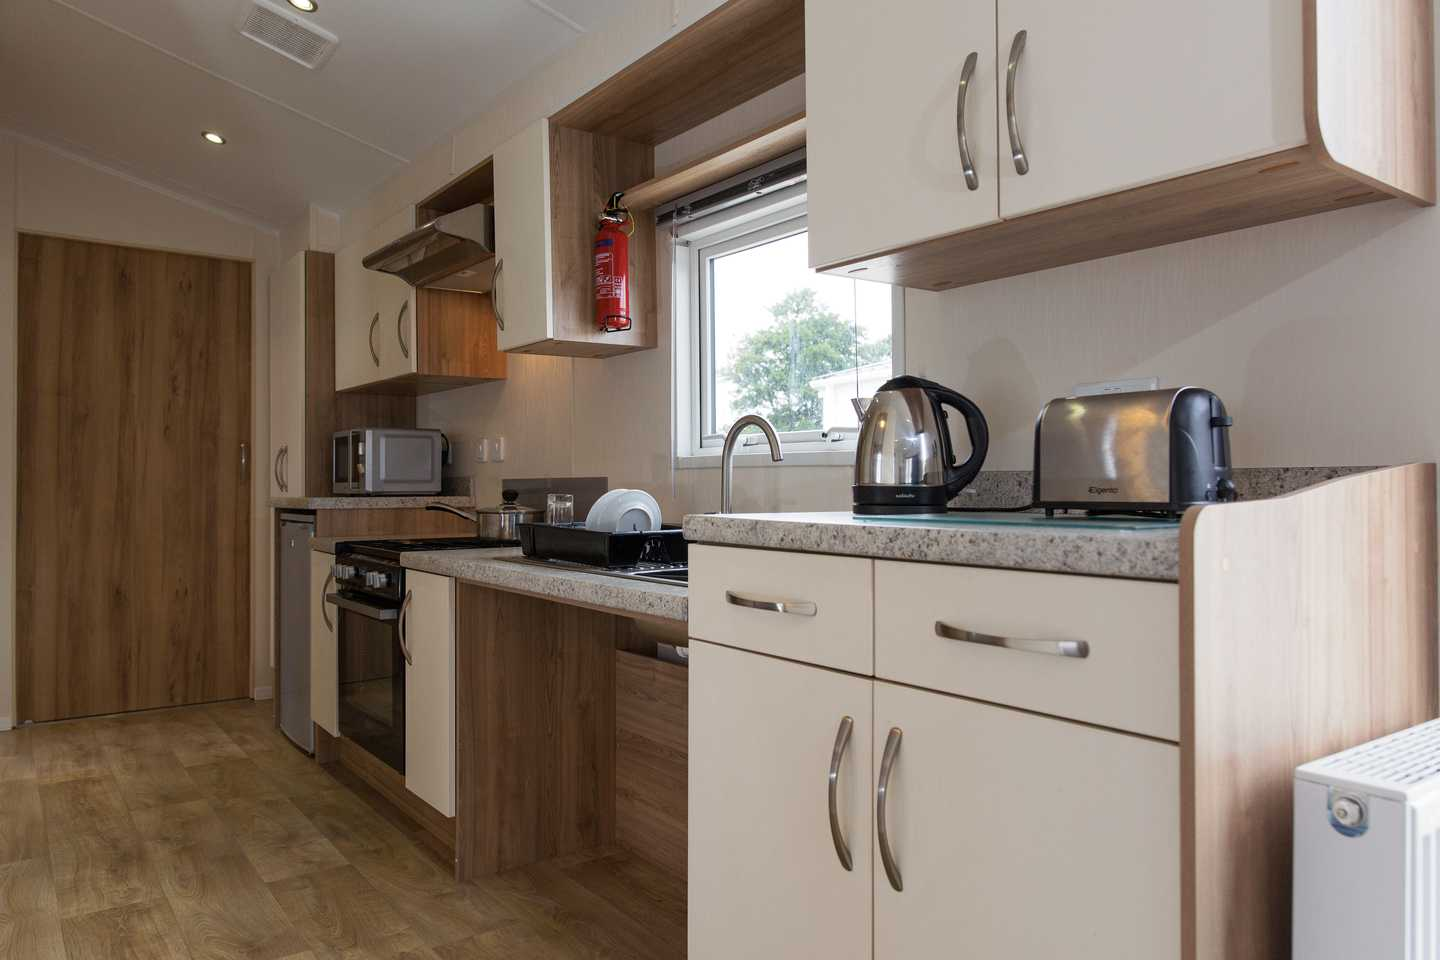 An Adapted caravan kitchen with kettle, toaster and storage